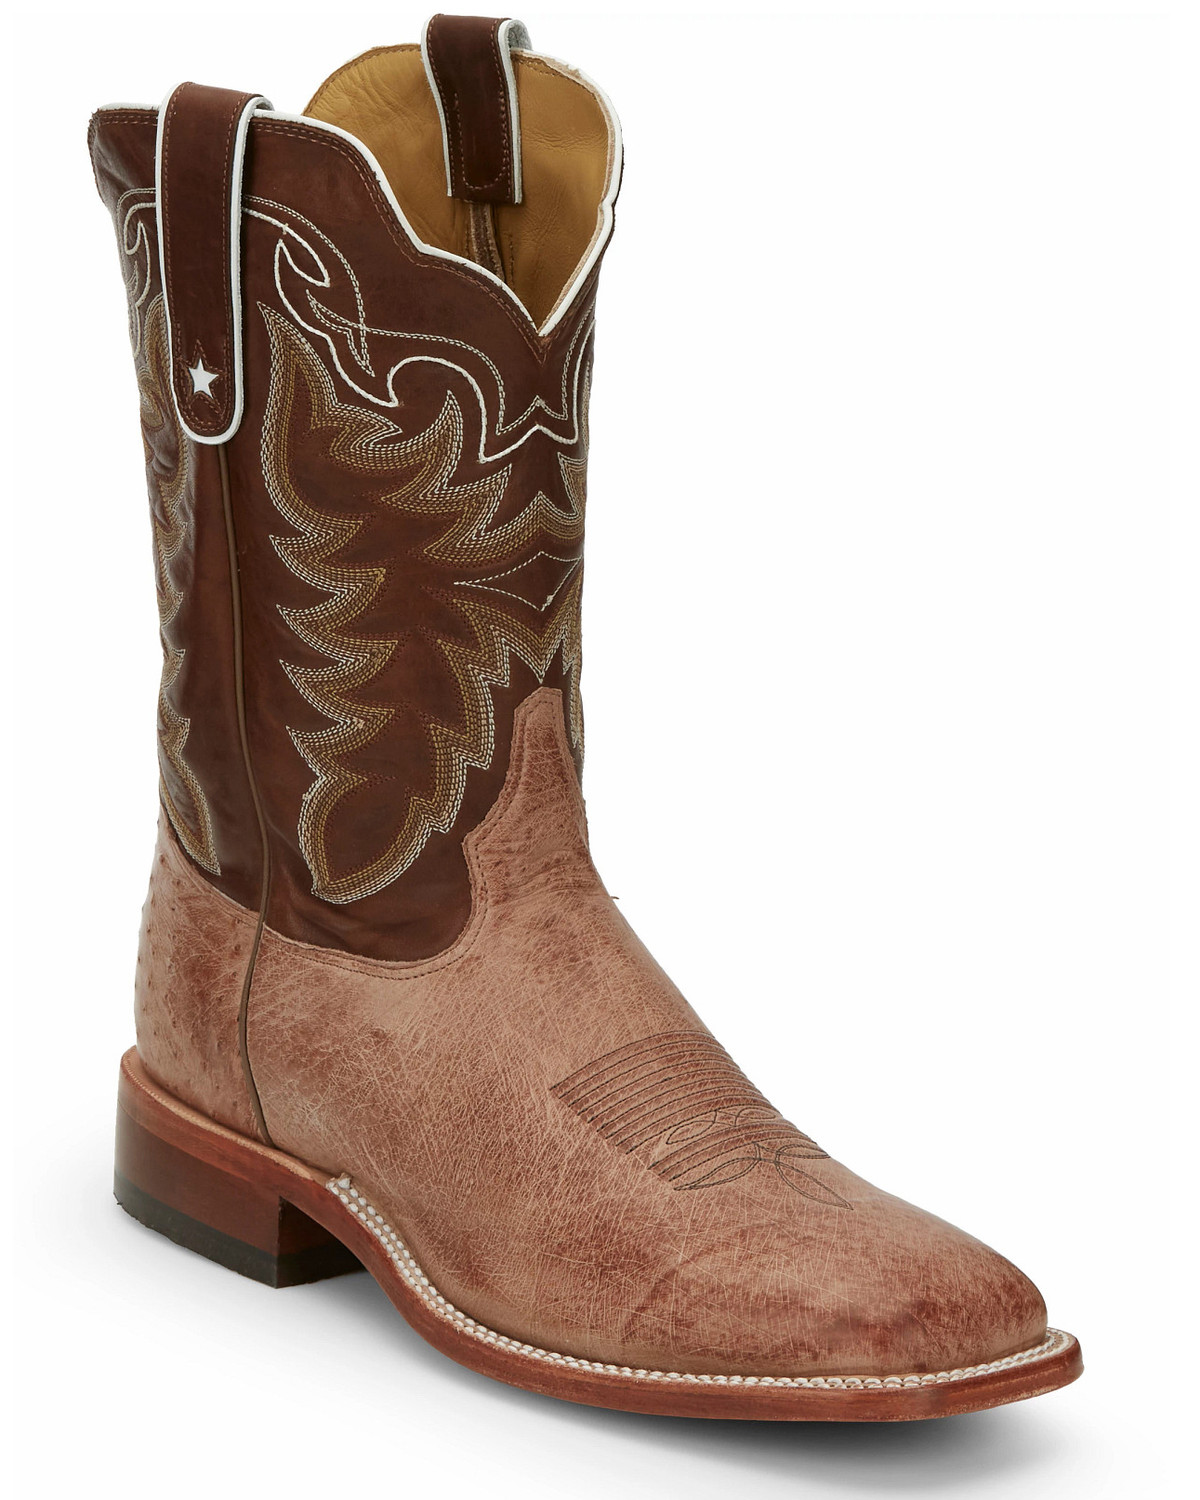 Tony Lama Thoroughbred Smooth Quill Ostrich Cowboy Boots